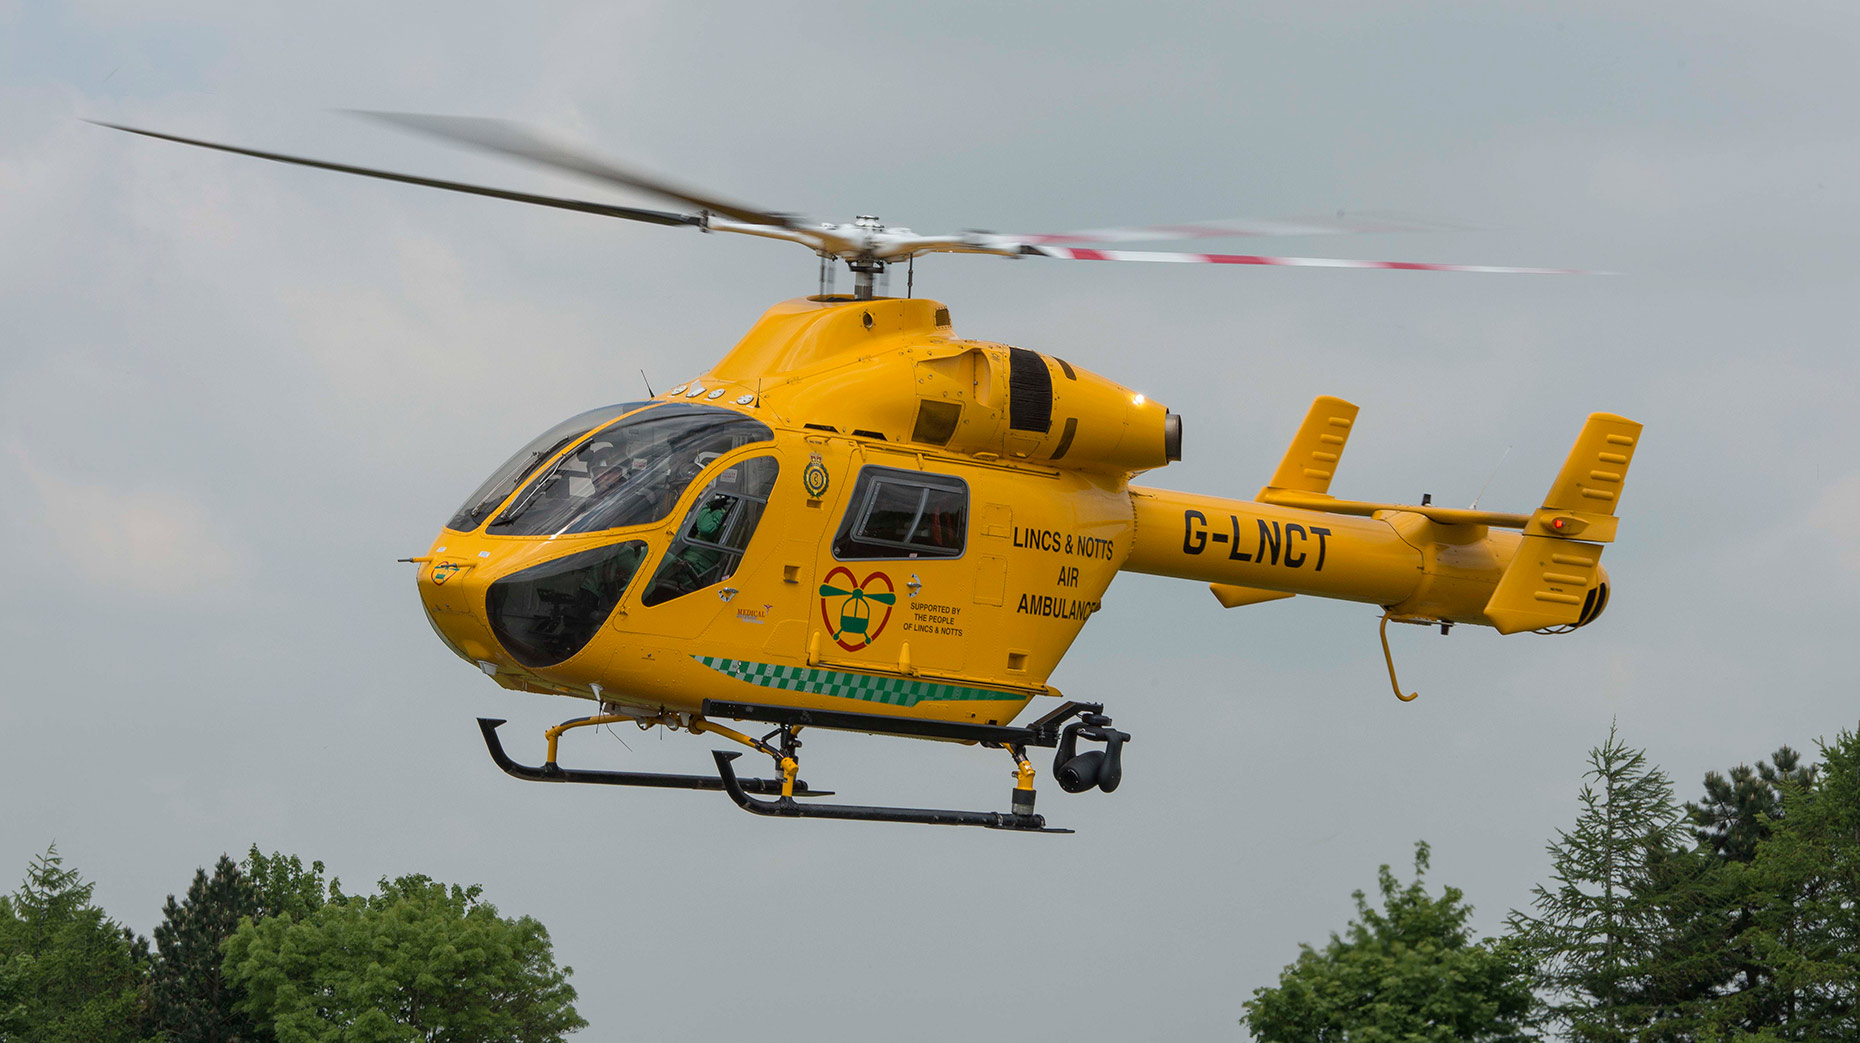 reach air medical helicopter with Air Ambulance Charity Await New Lincolnshire Ambucopter on Print Outs as well Bell407 rico furthermore Fire Extinguisher L2705 as well 20150121 further Buy Telescopic Pole Rod Daiwa Aqualite Alborella 79056.